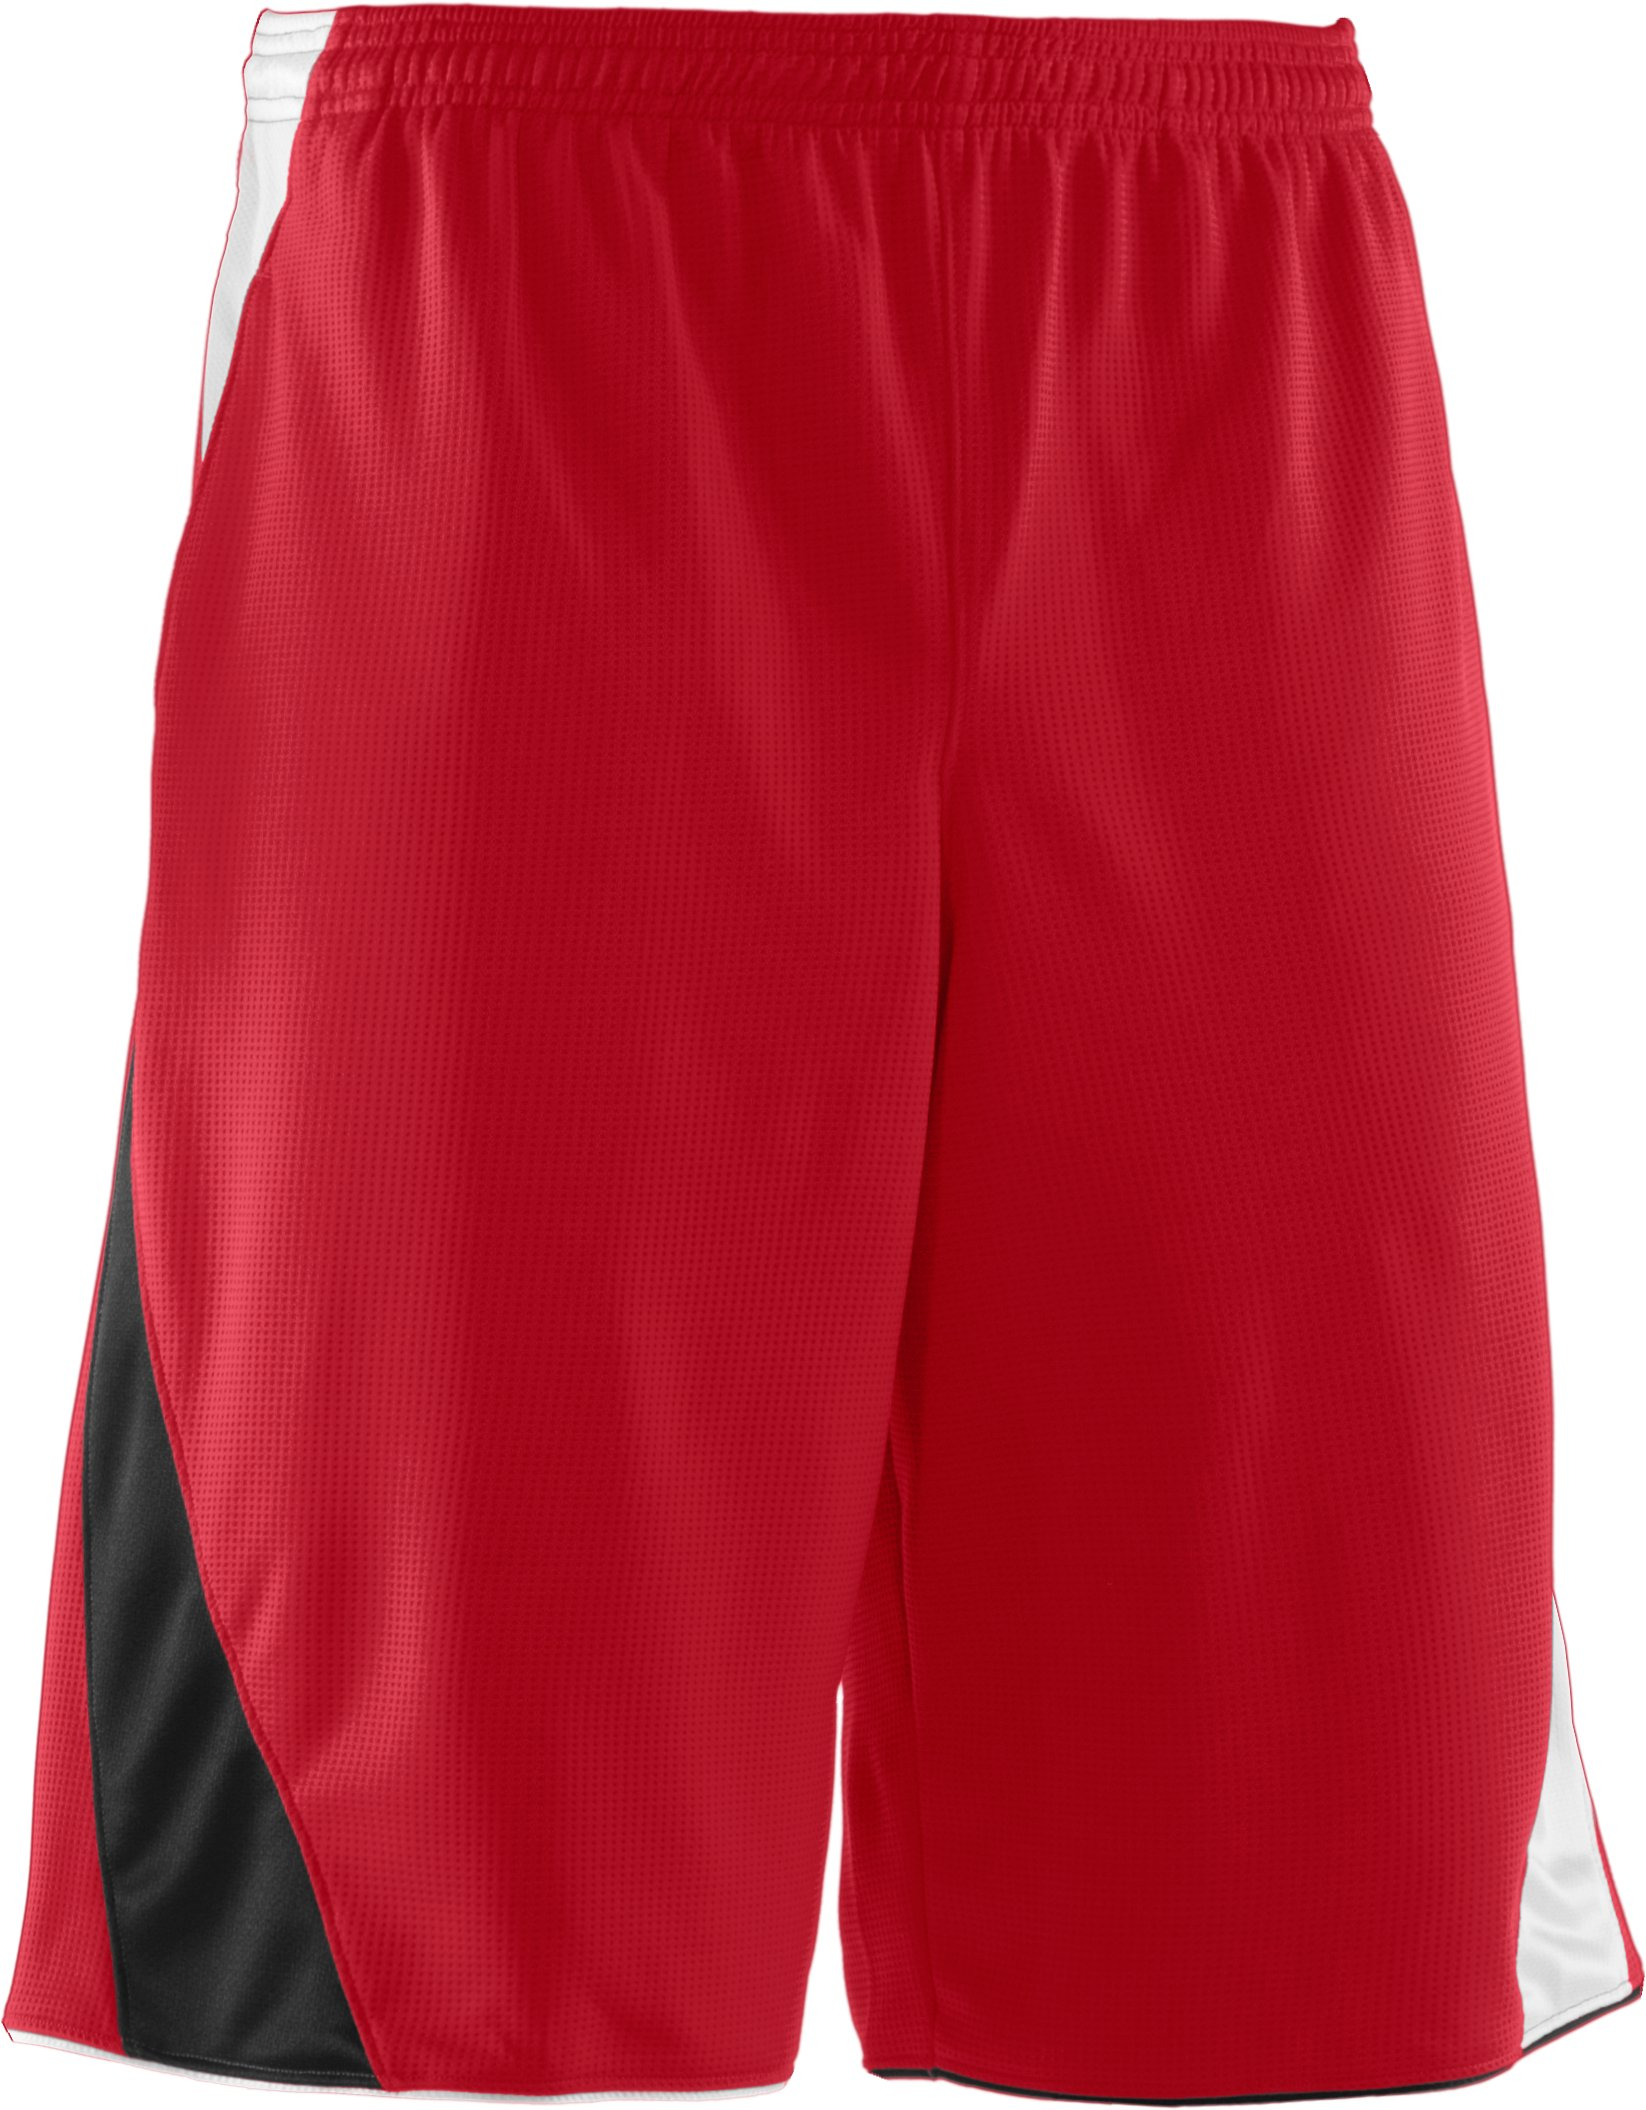 "Men's UA Bread Winner 12"" Basketball Shorts, Red"